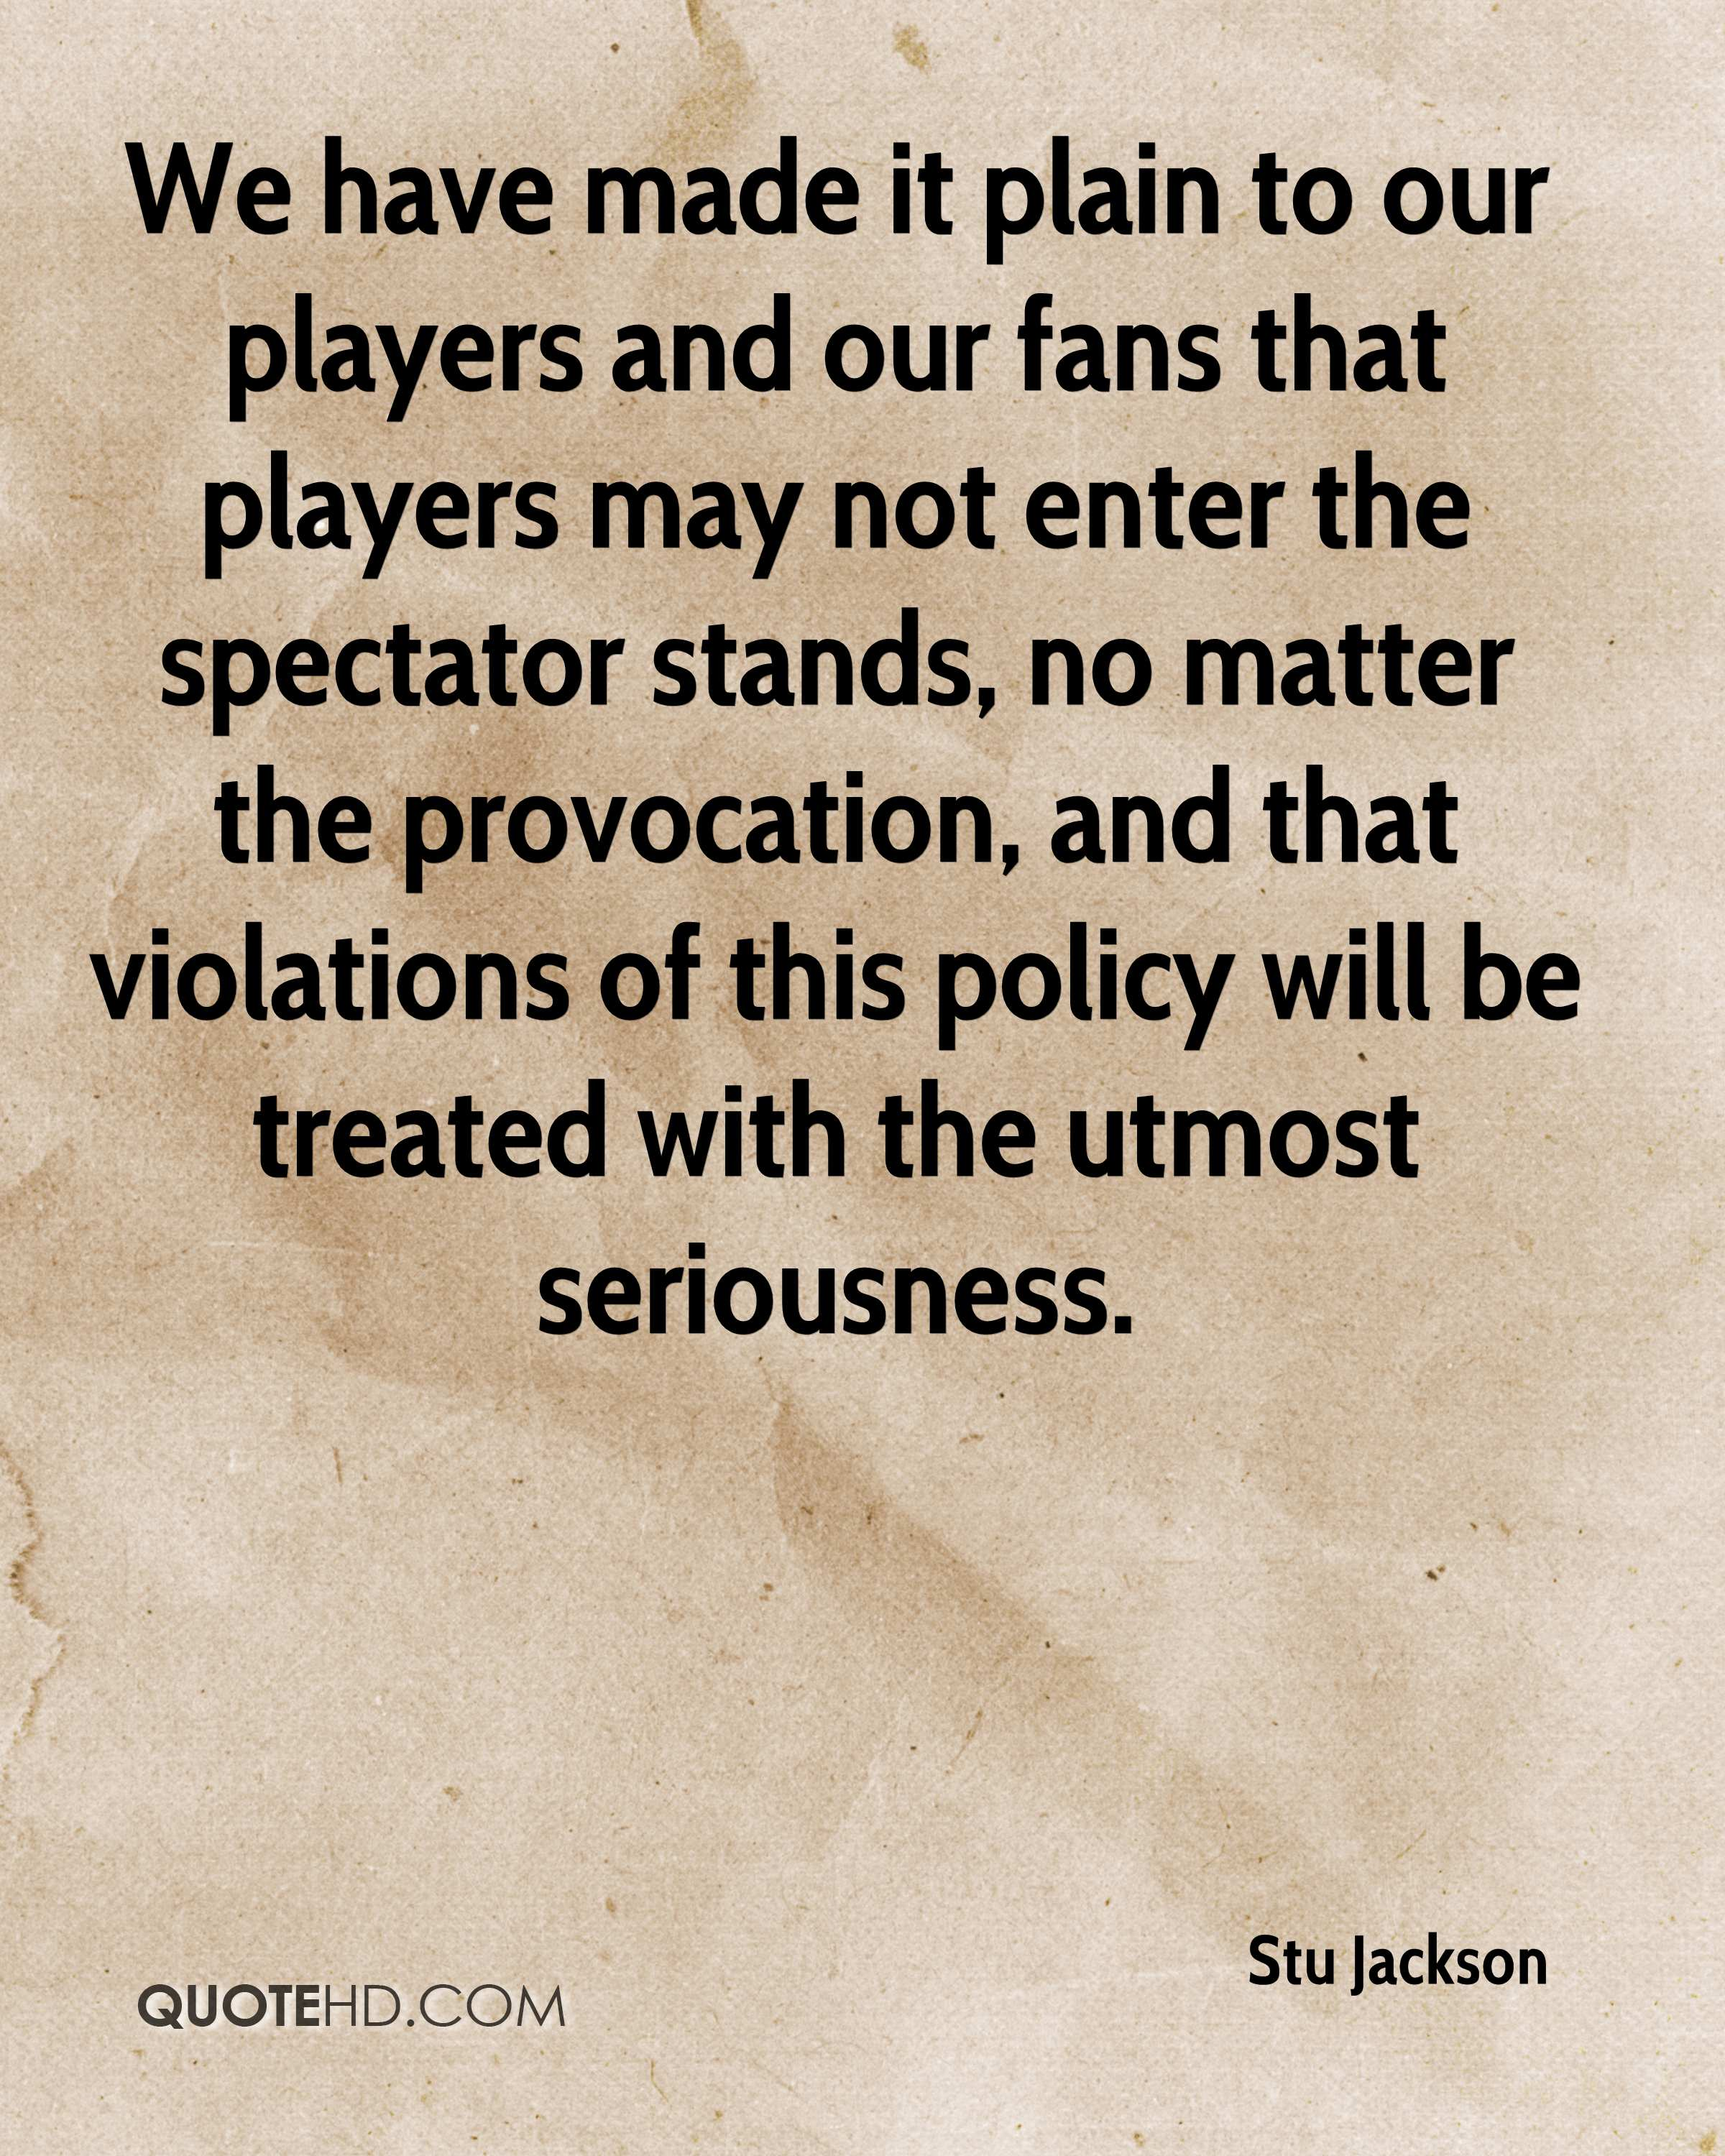 We have made it plain to our players and our fans that players may not enter the spectator stands, no matter the provocation, and that violations of this policy will be treated with the utmost seriousness.